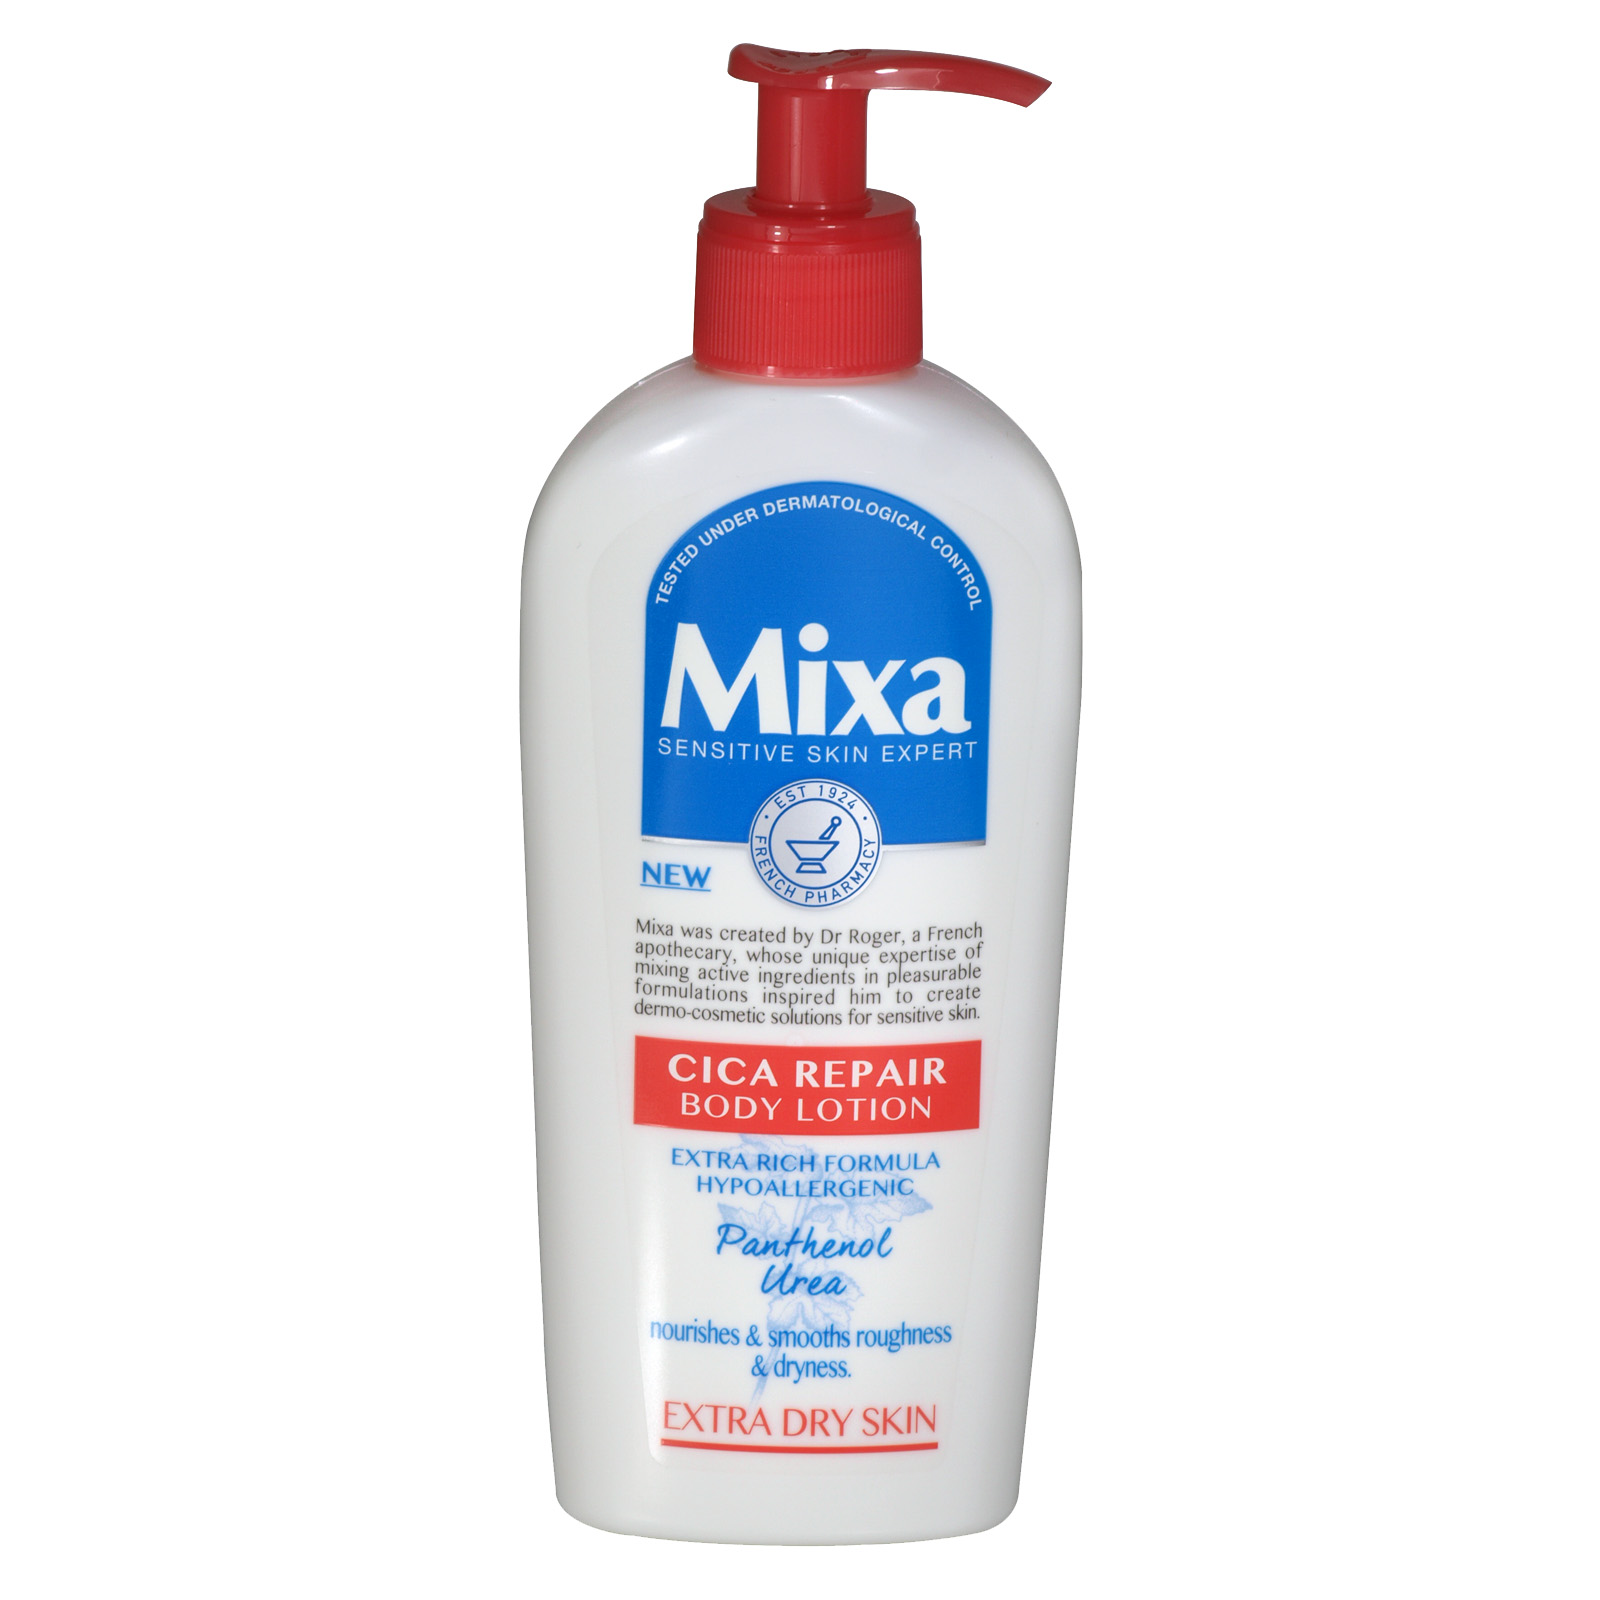 MIXA BODY LOTION 250ML CICA REPAIR EXTRA DRY SKIN X6